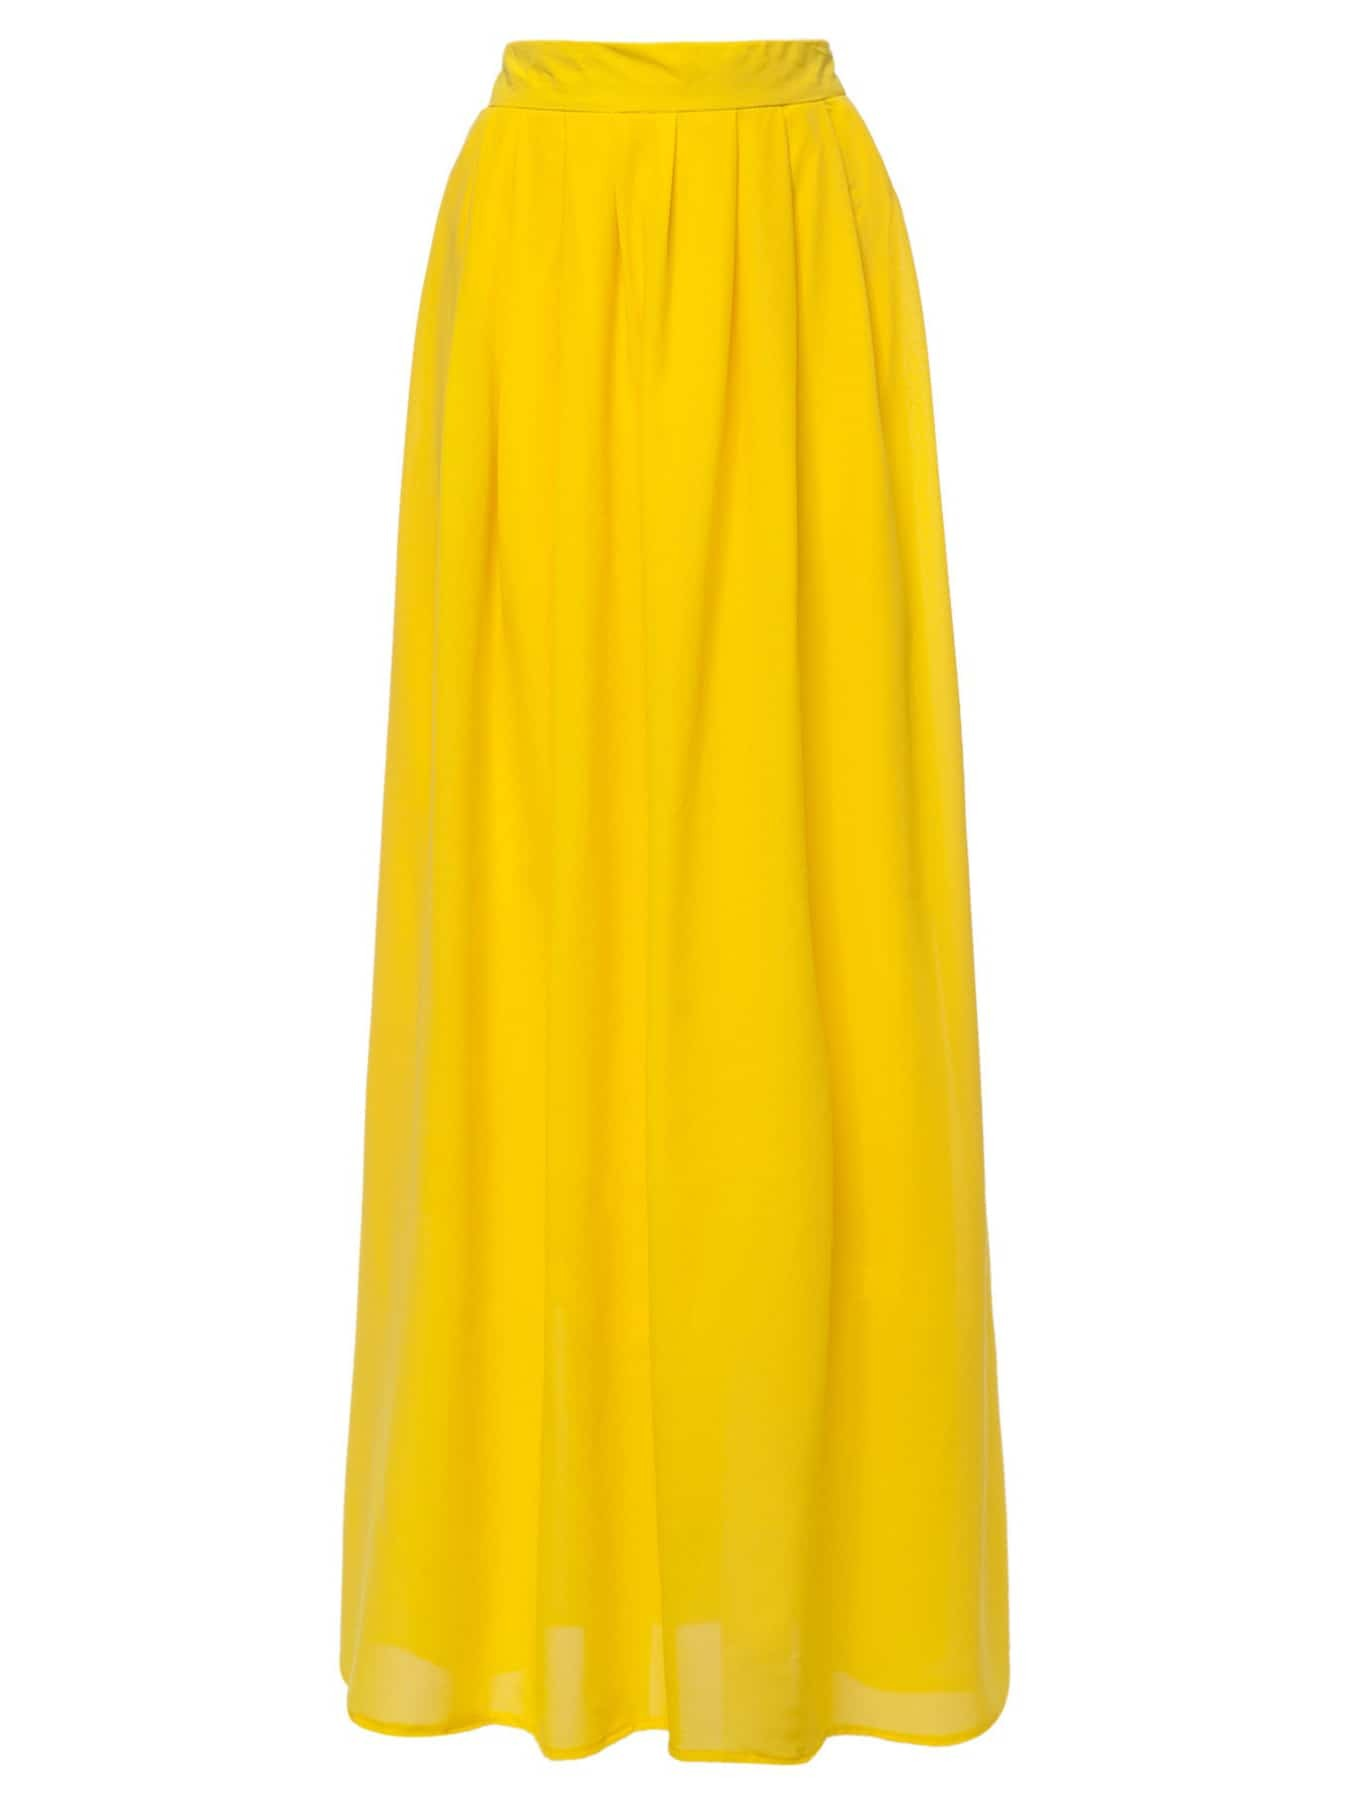 Yellow High Waist Maxi Skirt -SheIn(Sheinside)